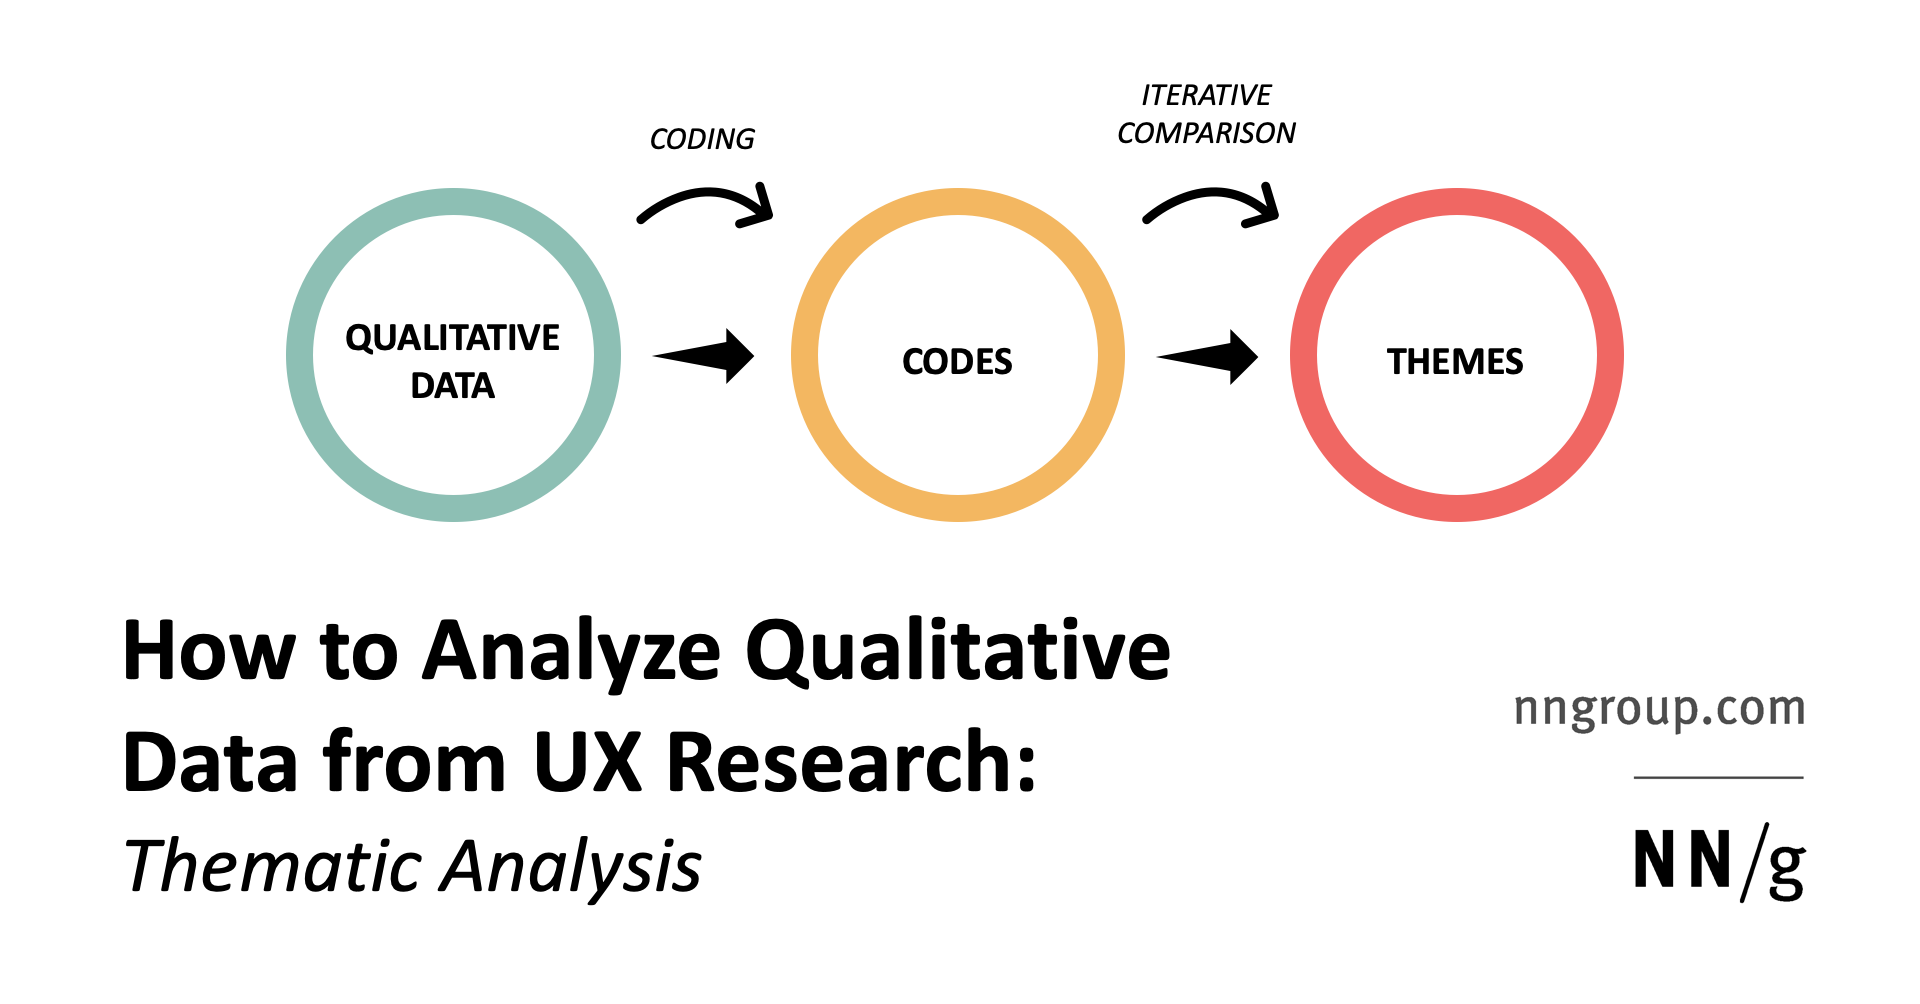 How to Analyze Qualitative Data from UX Research: Thematic Analysis